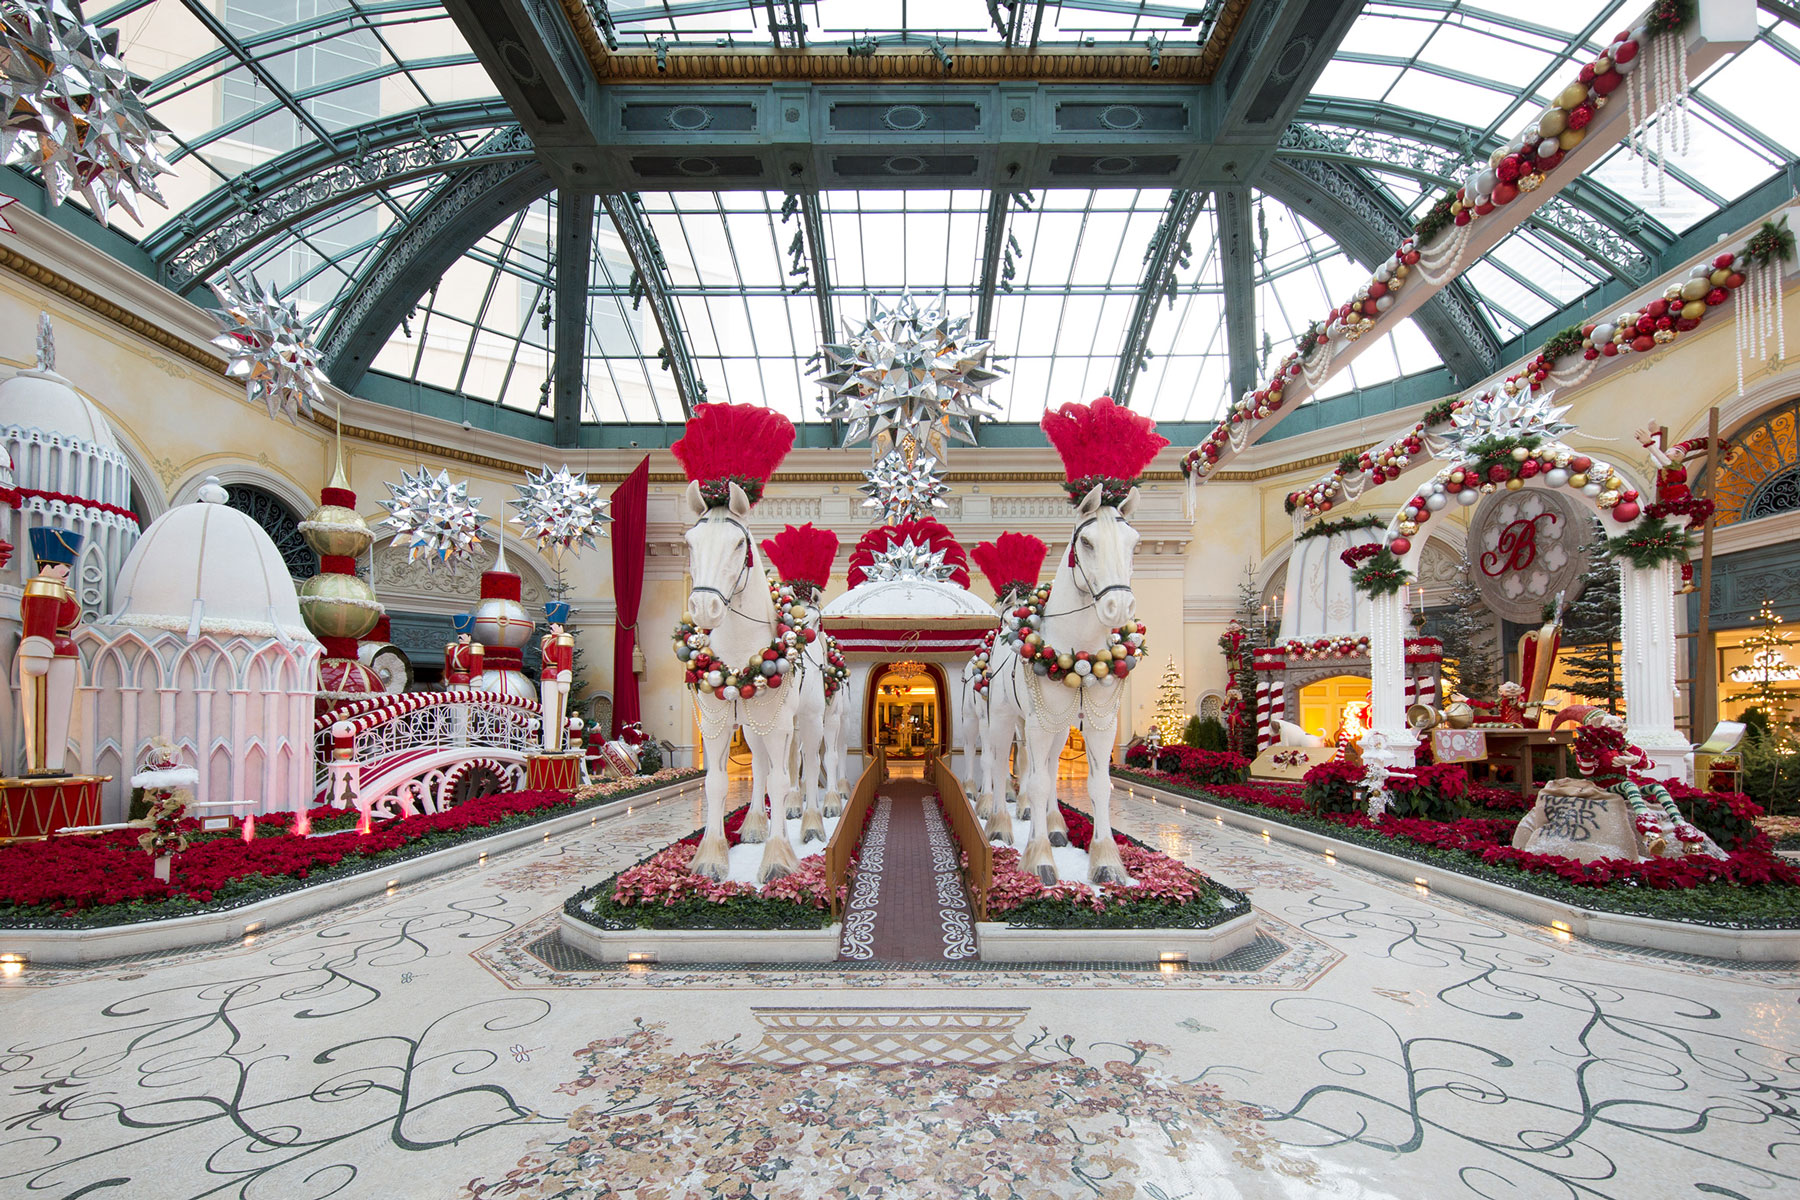 Popup Hotel Christmas Week 2021 California 15 Festive Hotels In The U S That Make The Holiday Season Even More Magical Travel Leisure